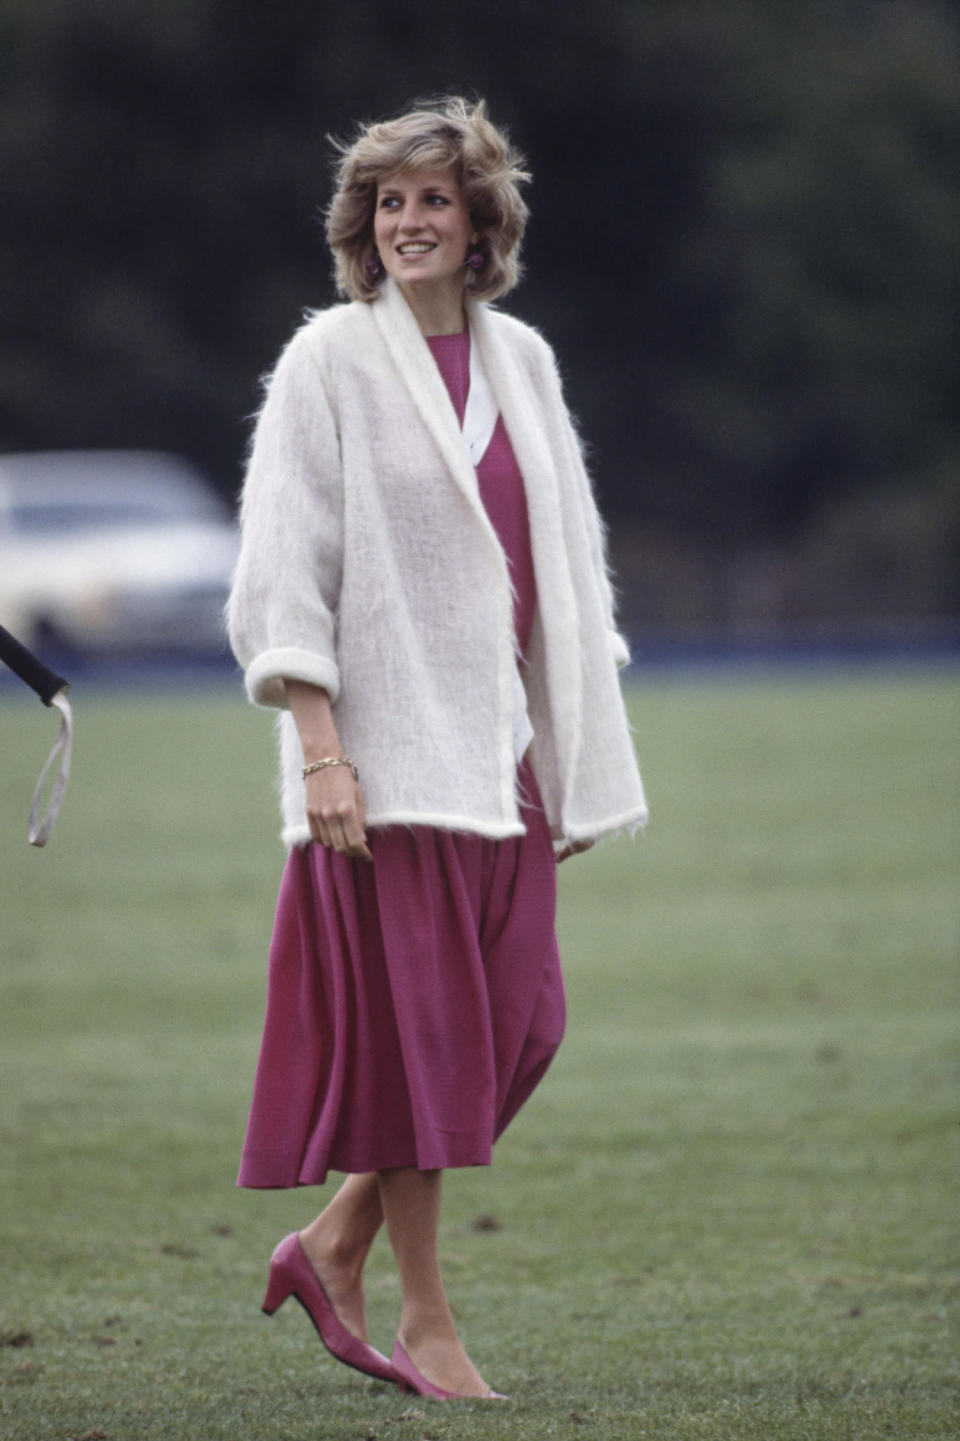 <p>Princess Diana wears a hot-pink dress and fuzzy cream sweater at the Guards Polo Club in Windsor. (Photo: Getty Images) </p>